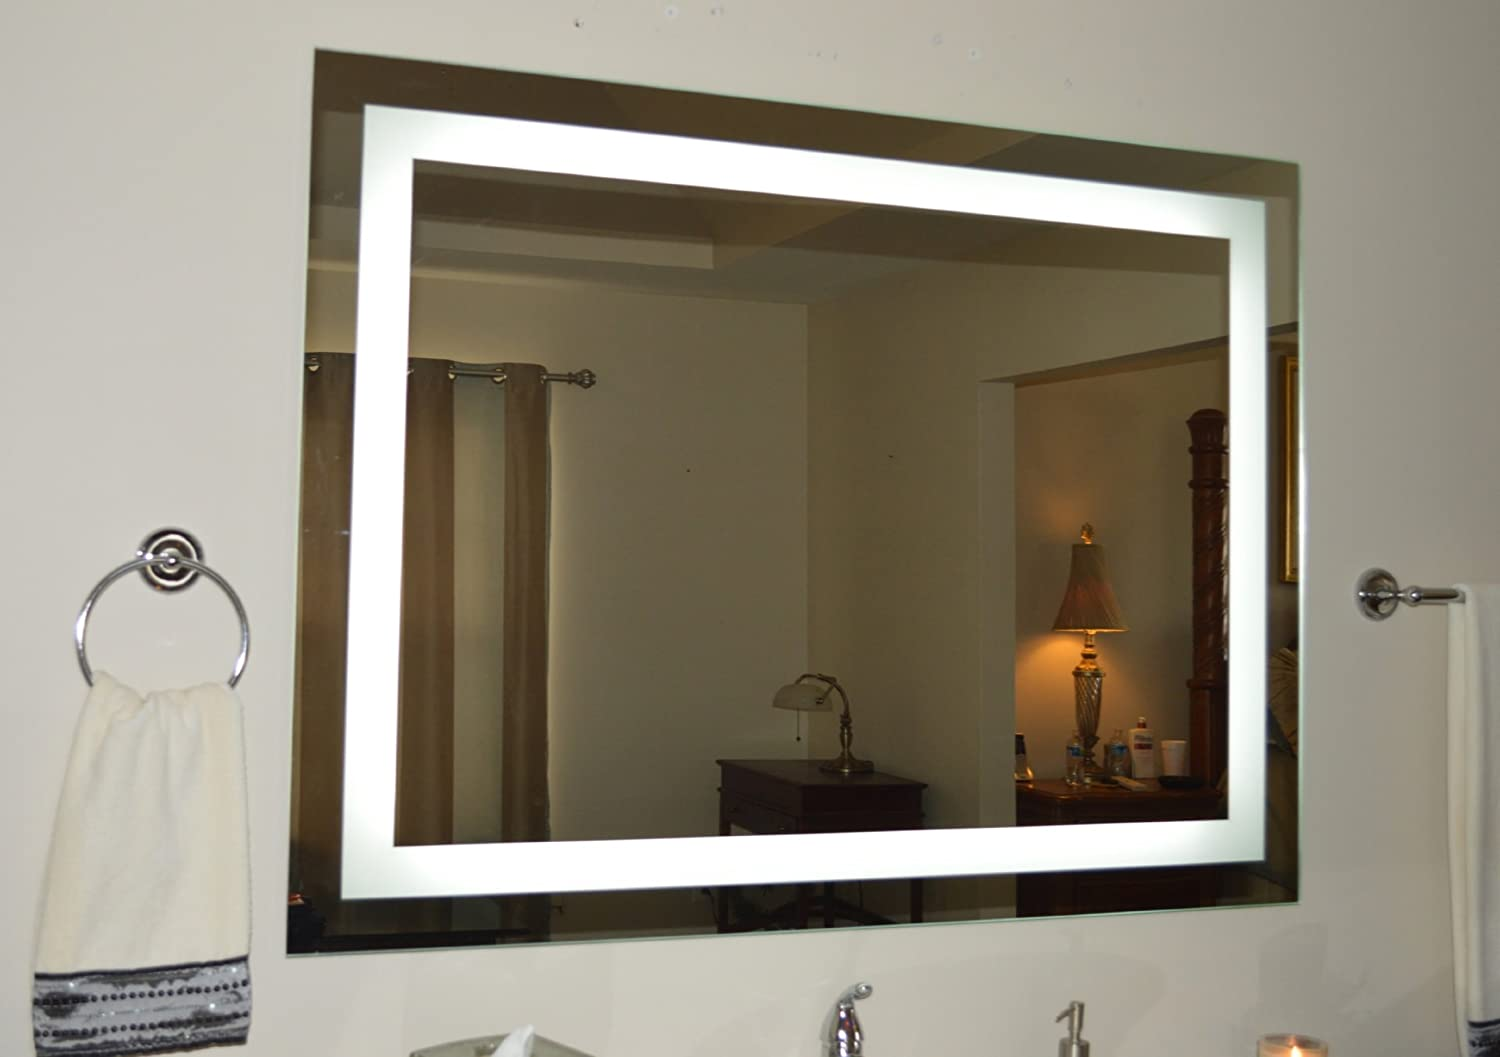 mirror 20 x 36. amazon.com: wall mounted lighted vanity mirror led mam84836 commercial grade 48: home \u0026 kitchen 20 x 36